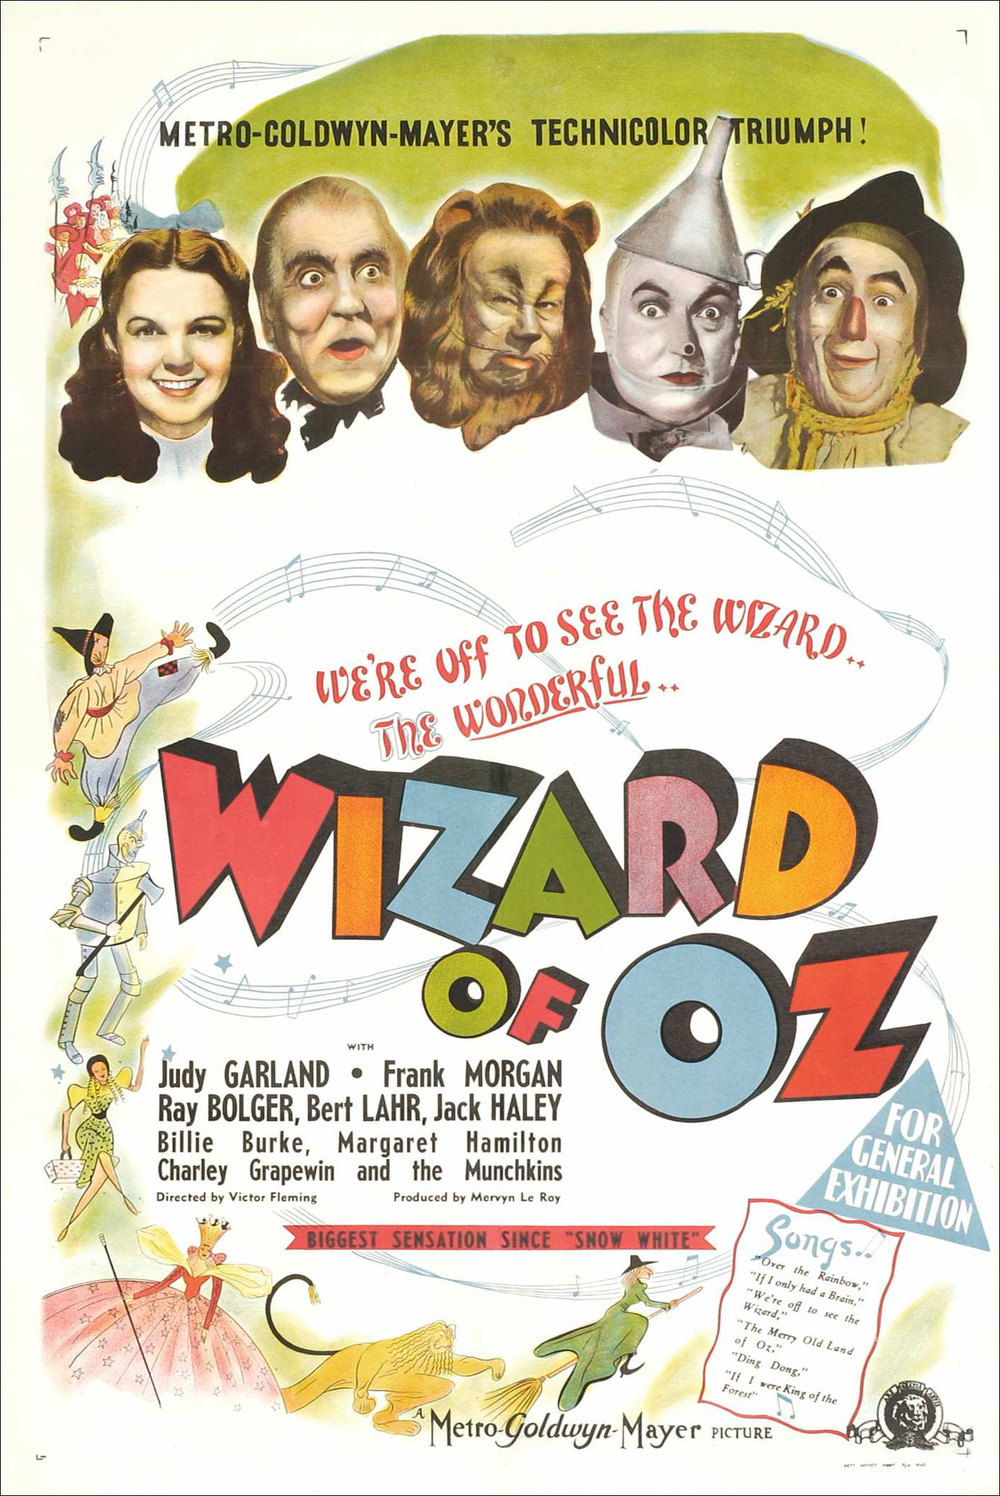 The Wizard of Oz,  Dir. Victor Fleming (1939)